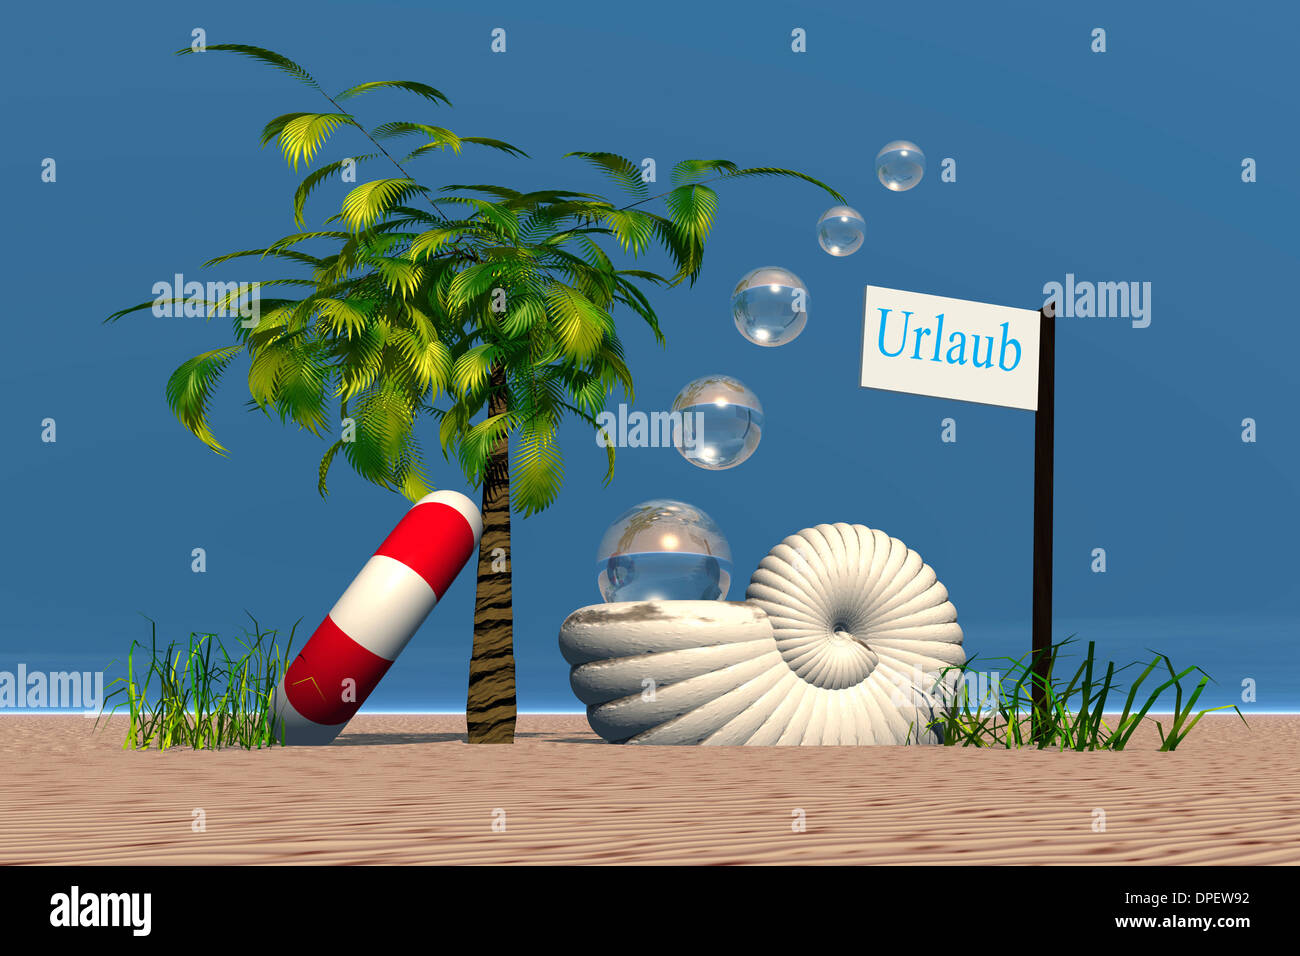 Sign Urlaub or holiday with nautilus shell, palm tree and swimming tire at the beach, 3D graphics - Stock Image